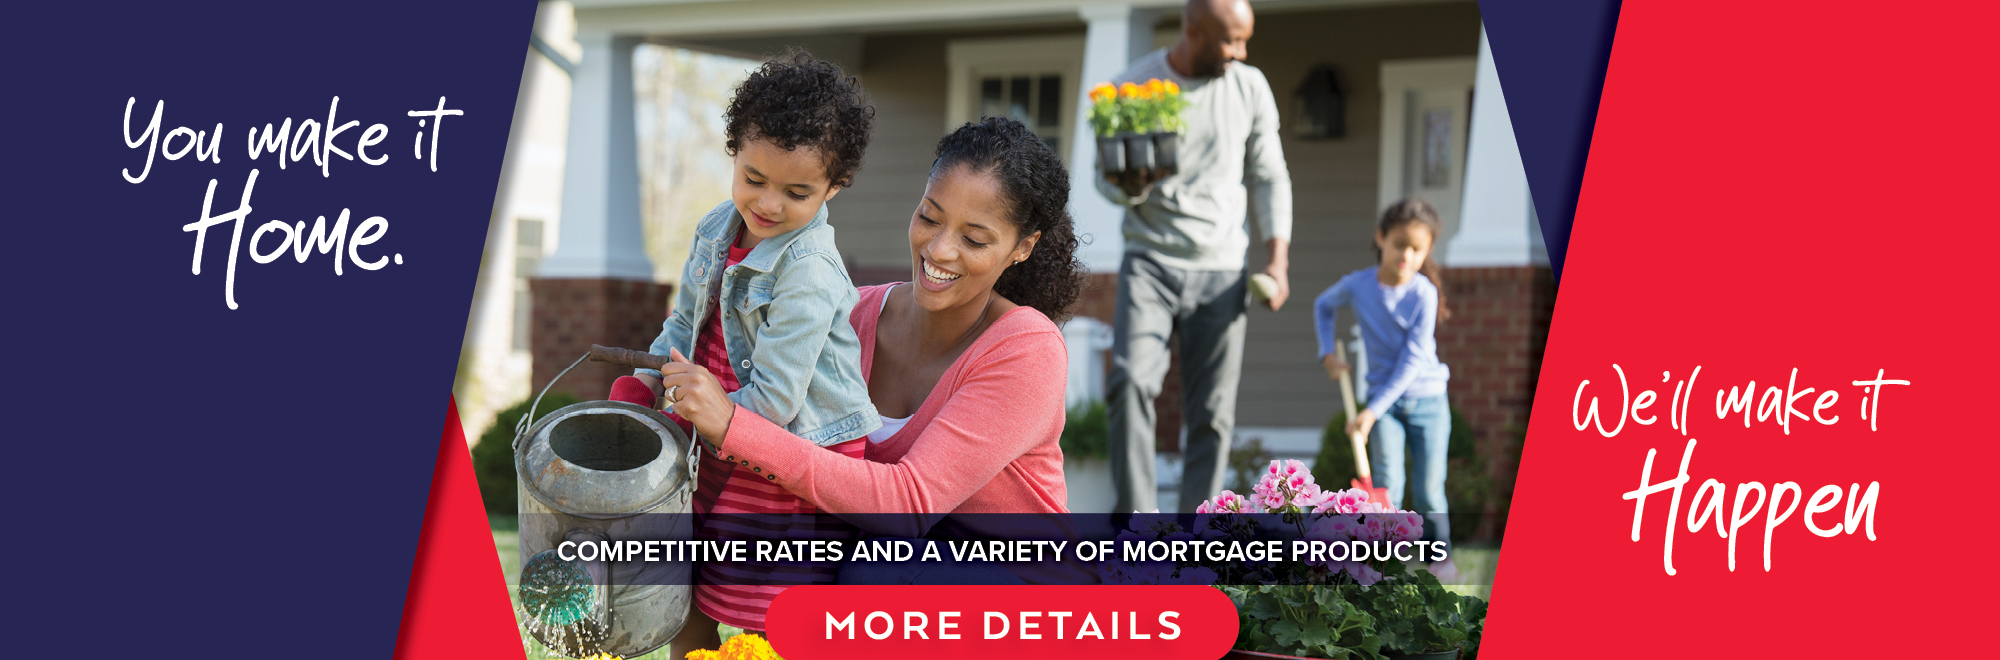 You make it home. We'll make it happen with competitive ratres and a variety of mortgage products.